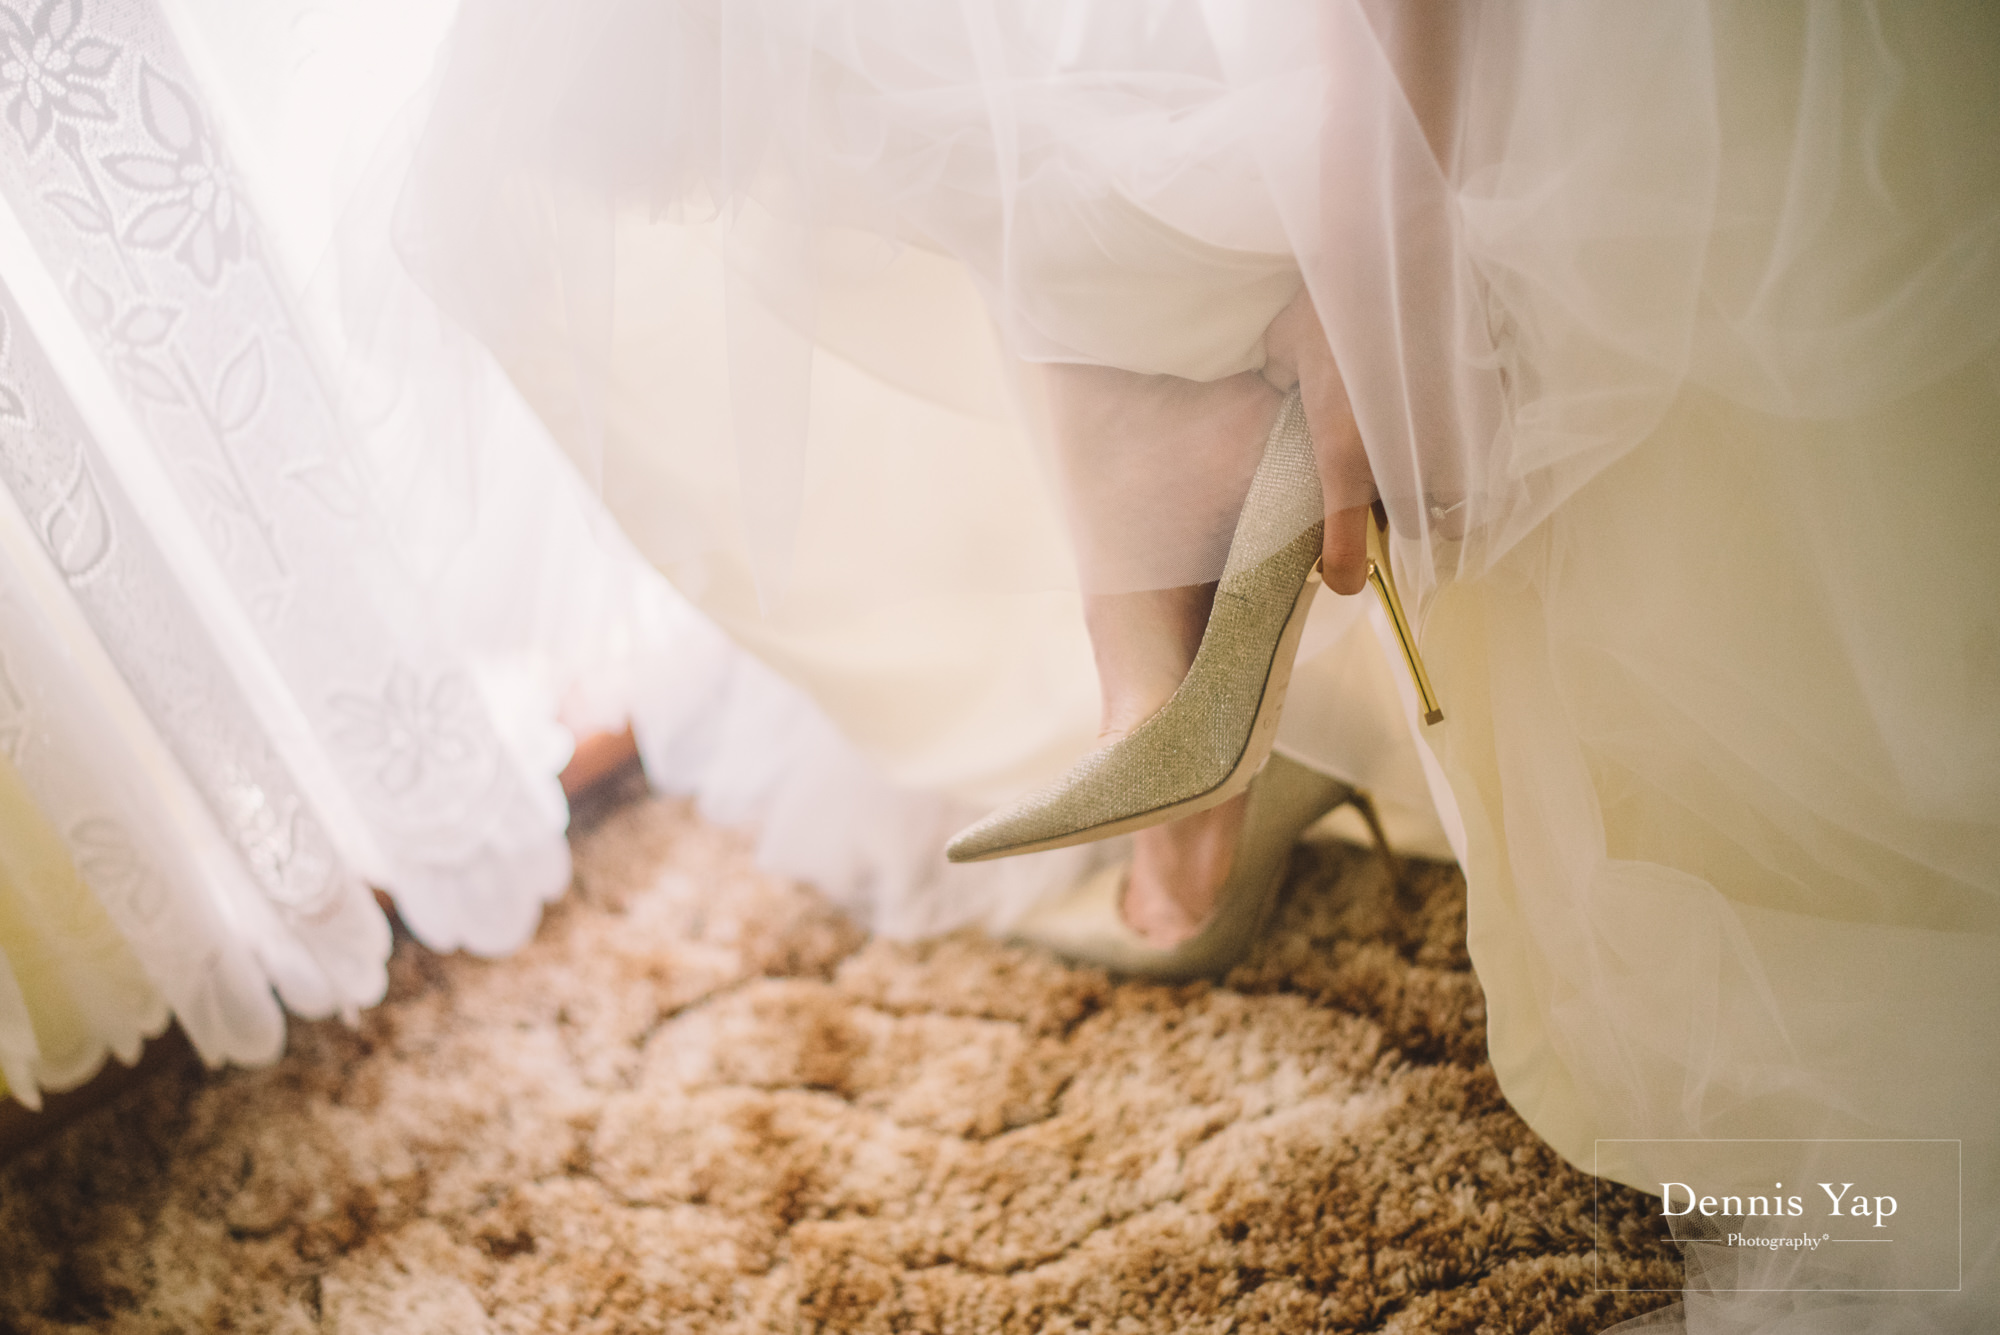 ethan janet perth wedding reception and garden ceremony in lamonts dennis yap photography-9.jpg